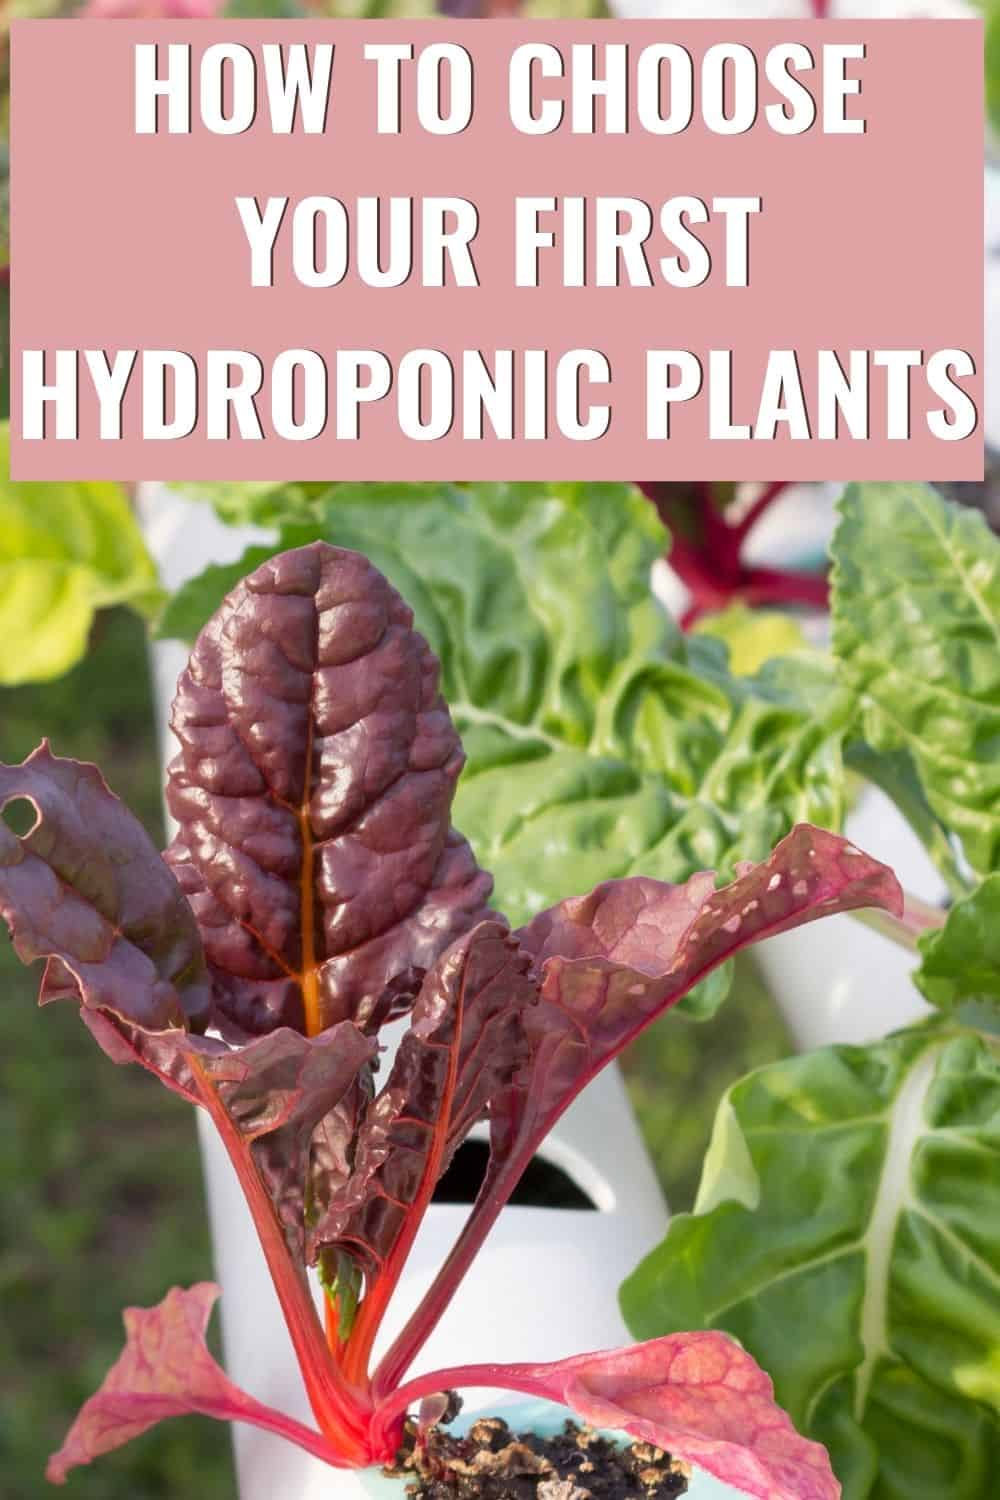 How to choose your first hydroponic plants?